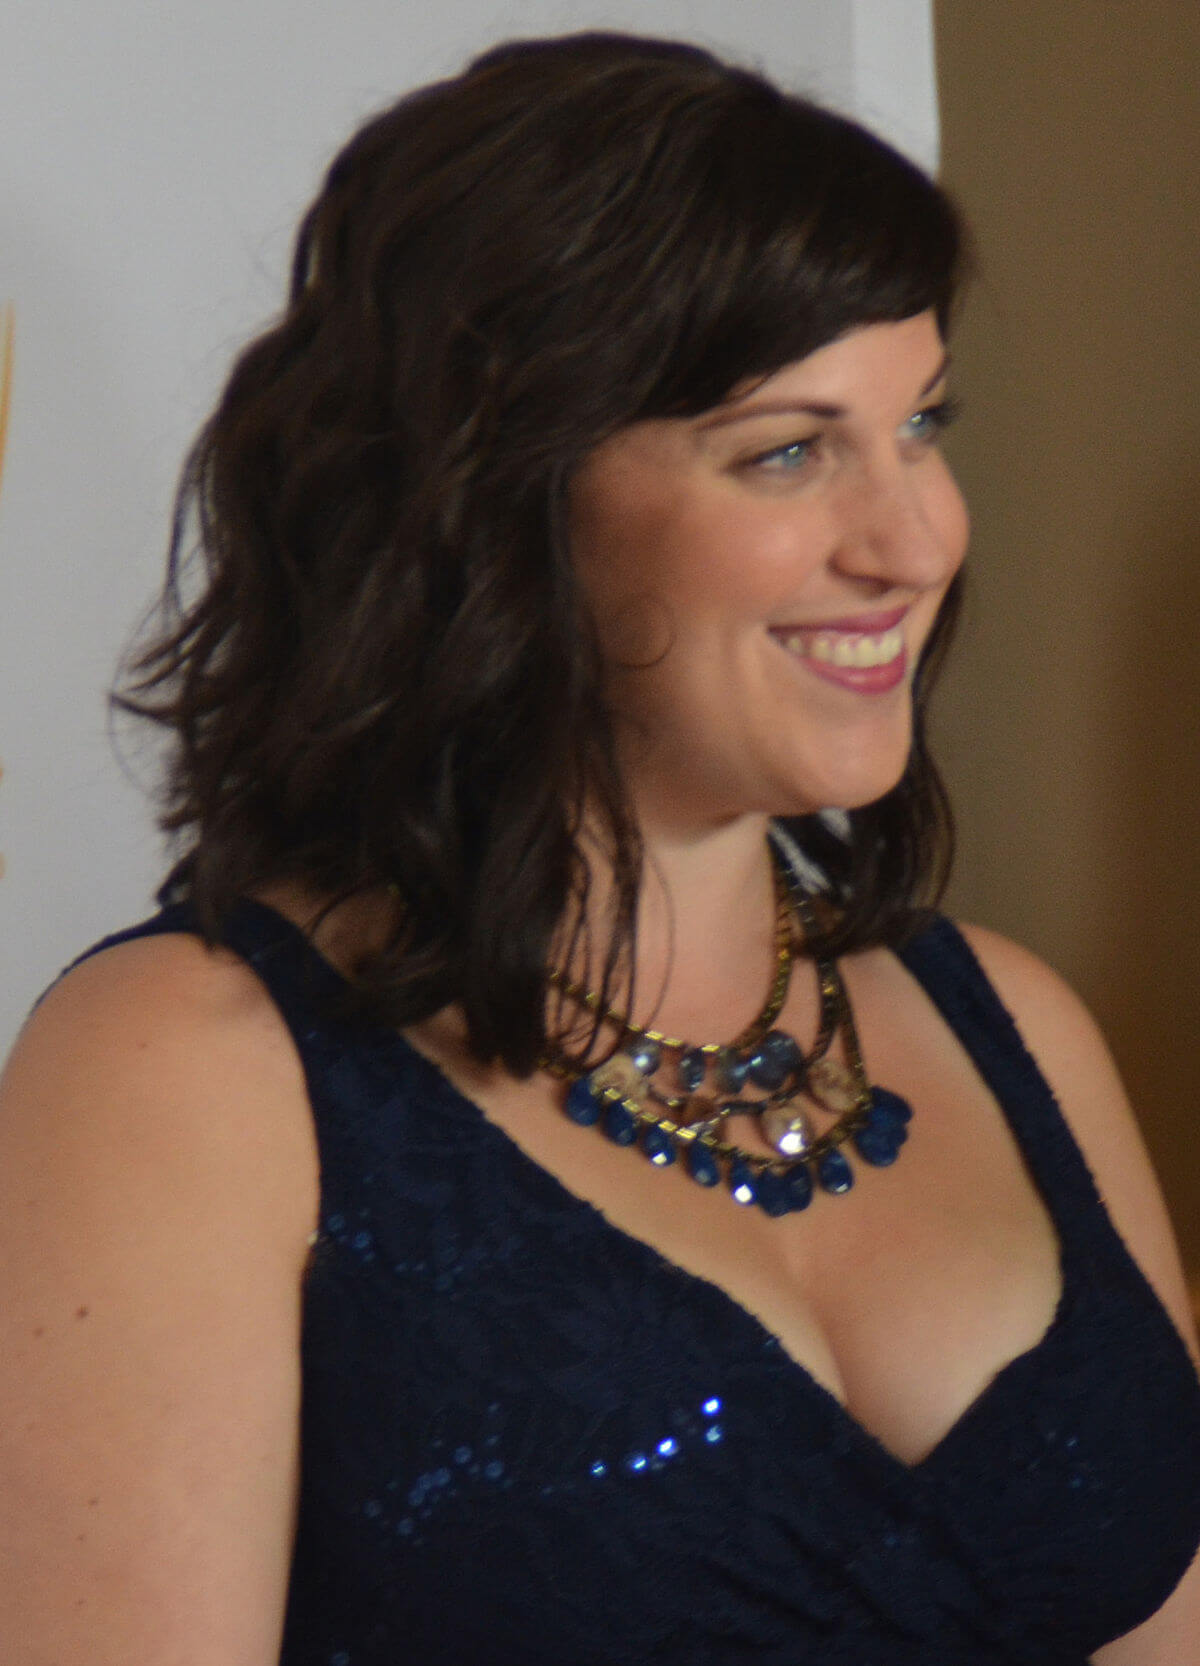 Boobs Tits Allison Tolman  nude (18 pics), YouTube, braless